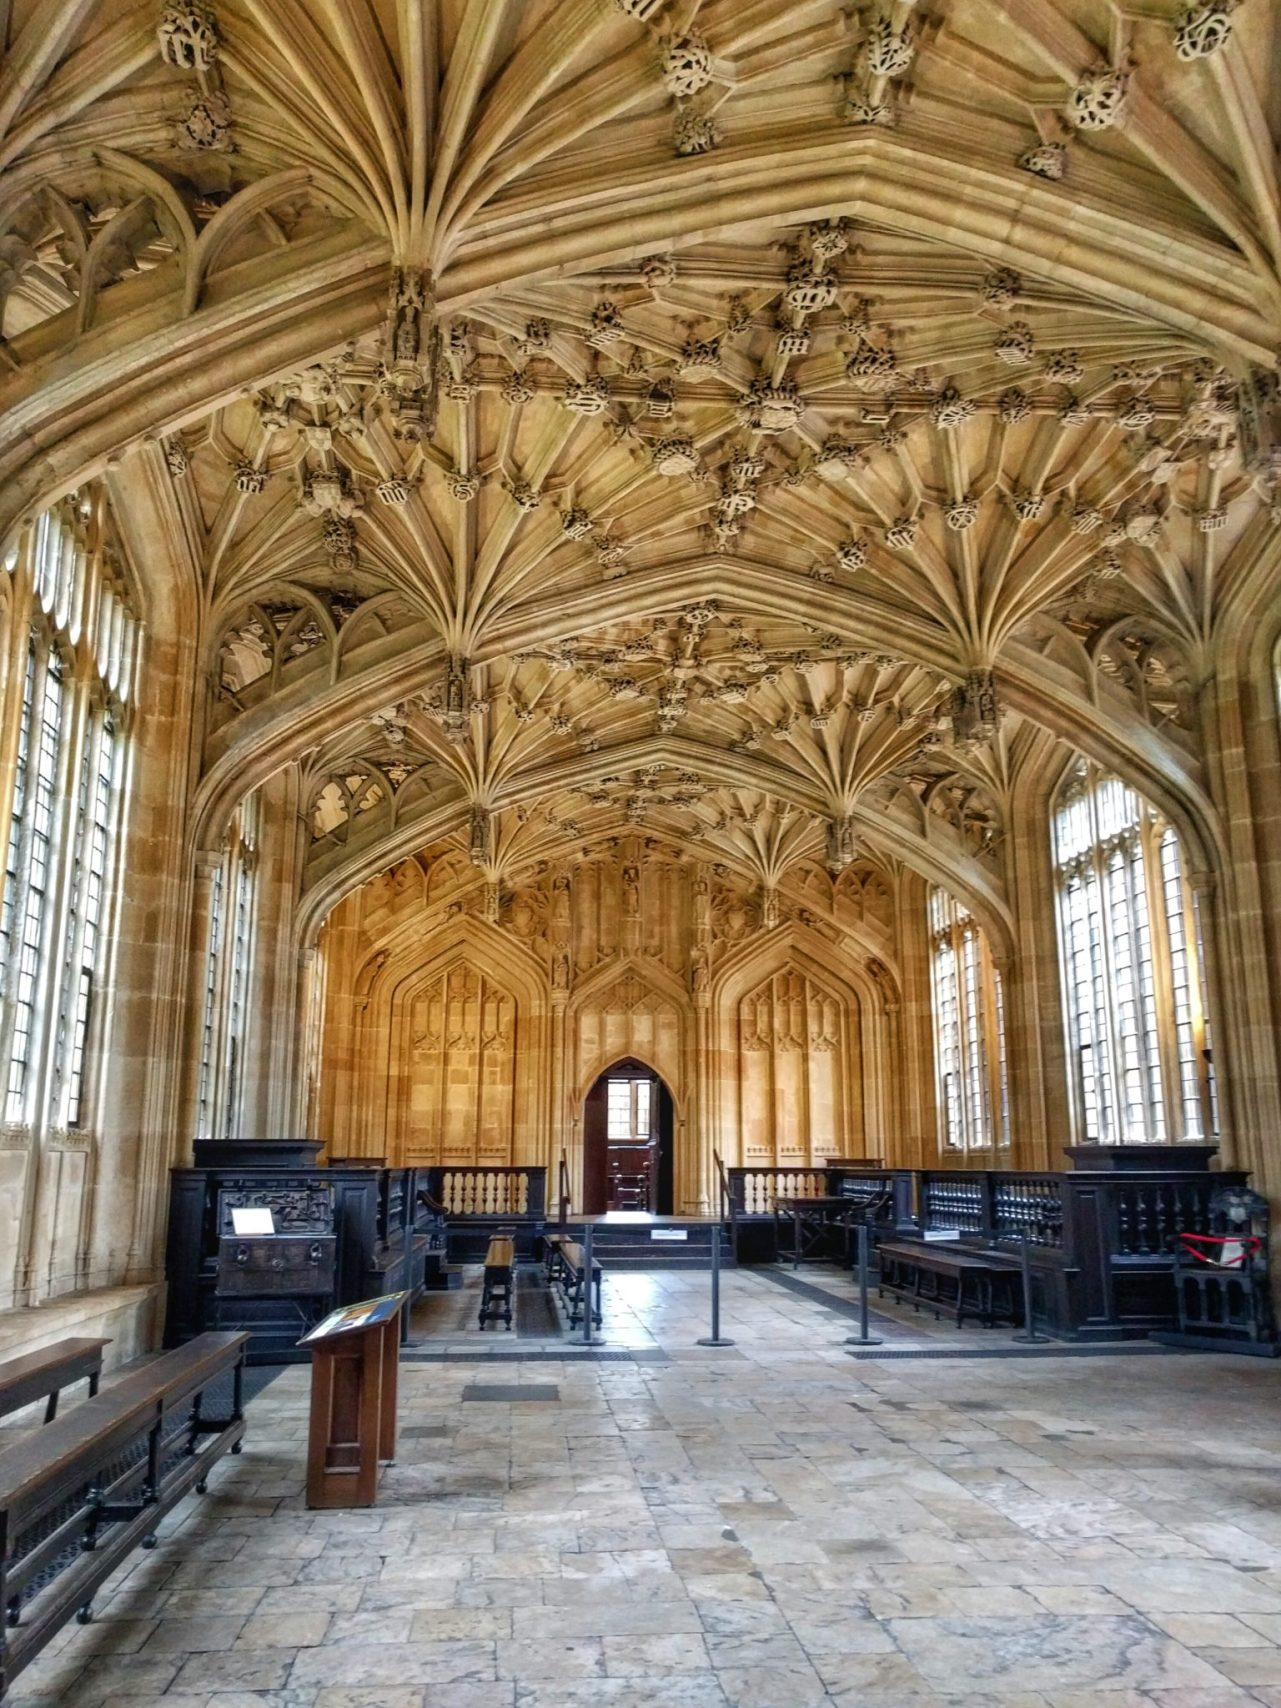 Divinity School, Bodleian Library, Oxford